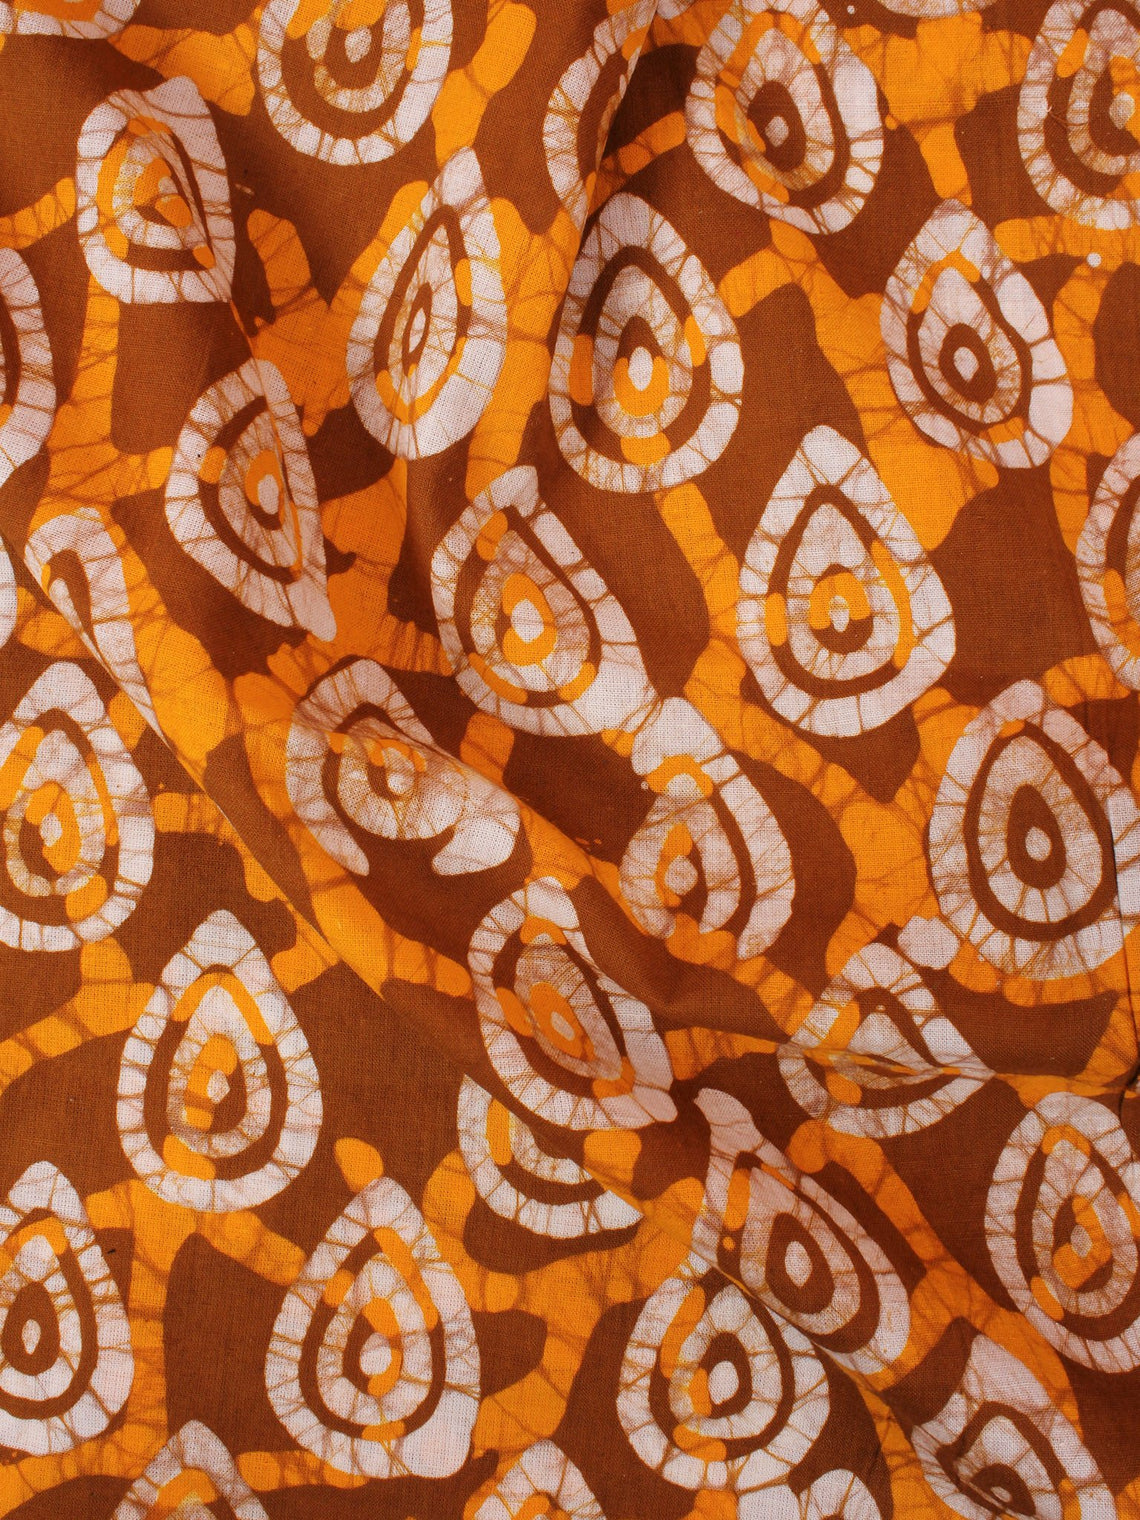 Mustard Yellow White Hand Block Printed Cotton Fabric Per Meter - F0916343